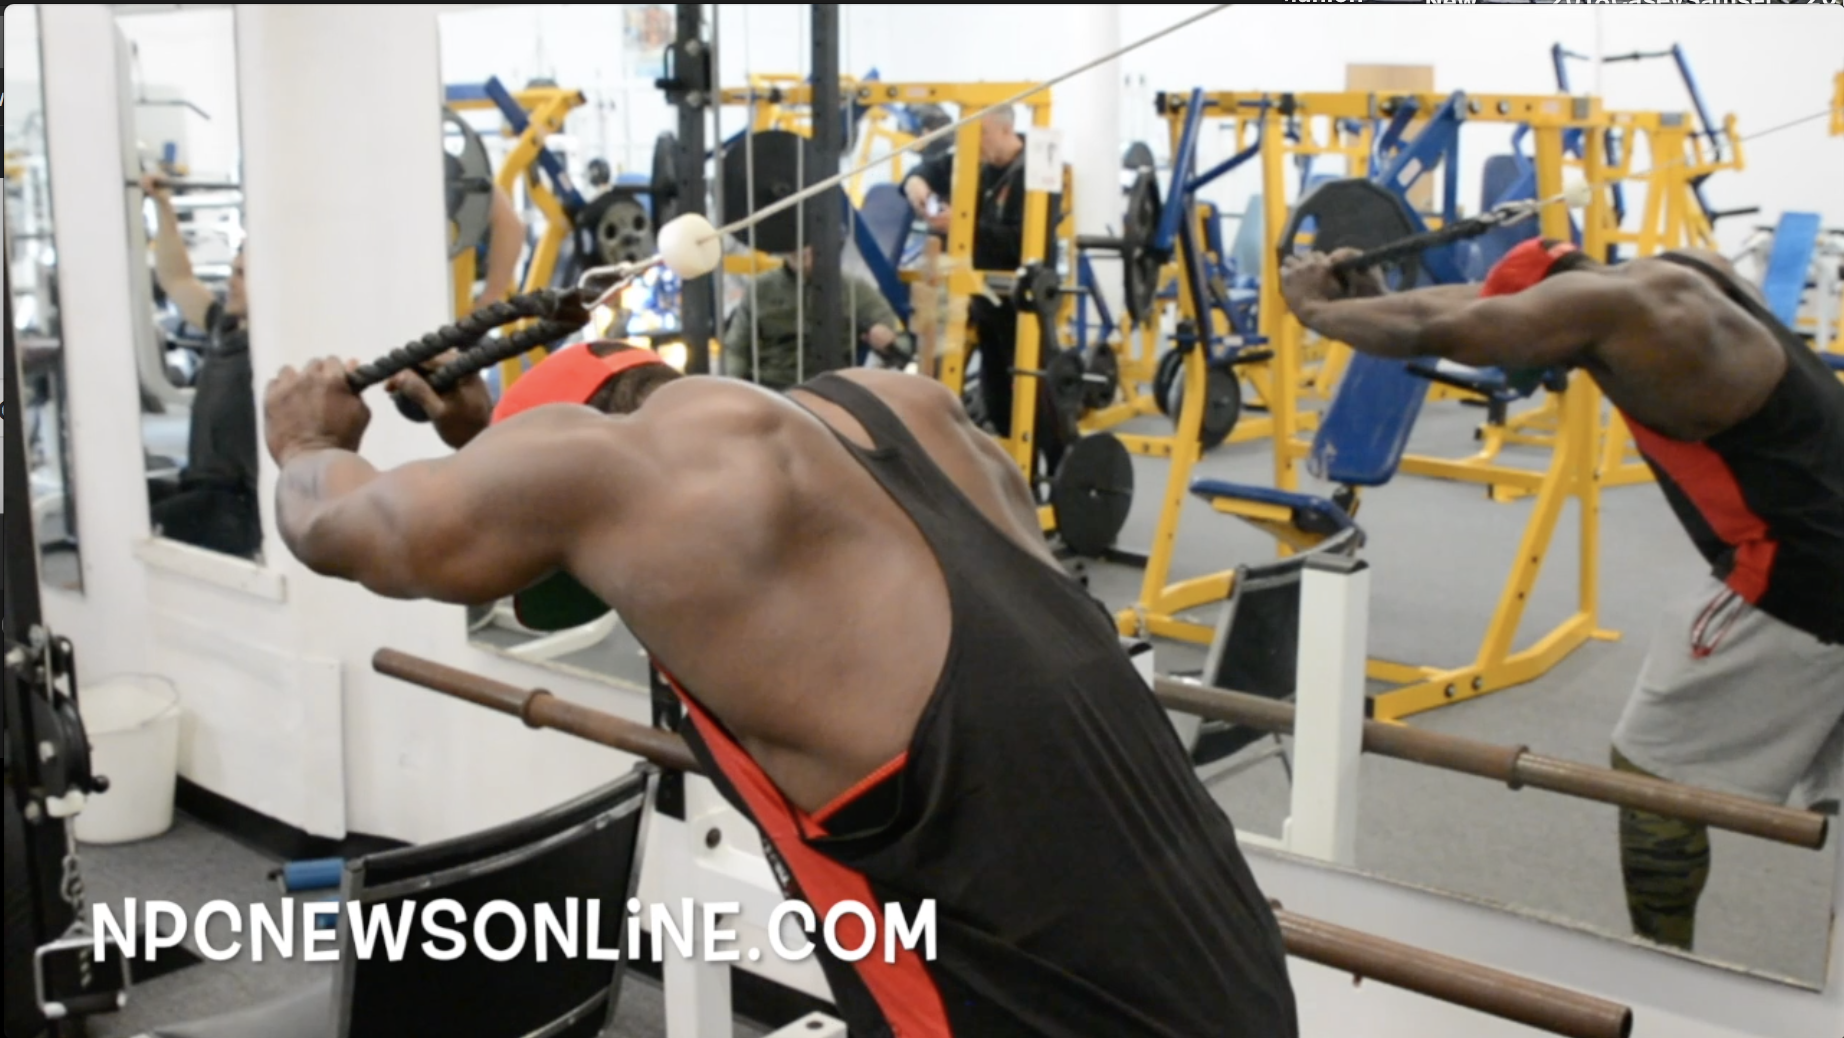 IFBB Men's Physique Pro George Brown: Arm Training Road To The 2018 Arnold Pt.4 Video